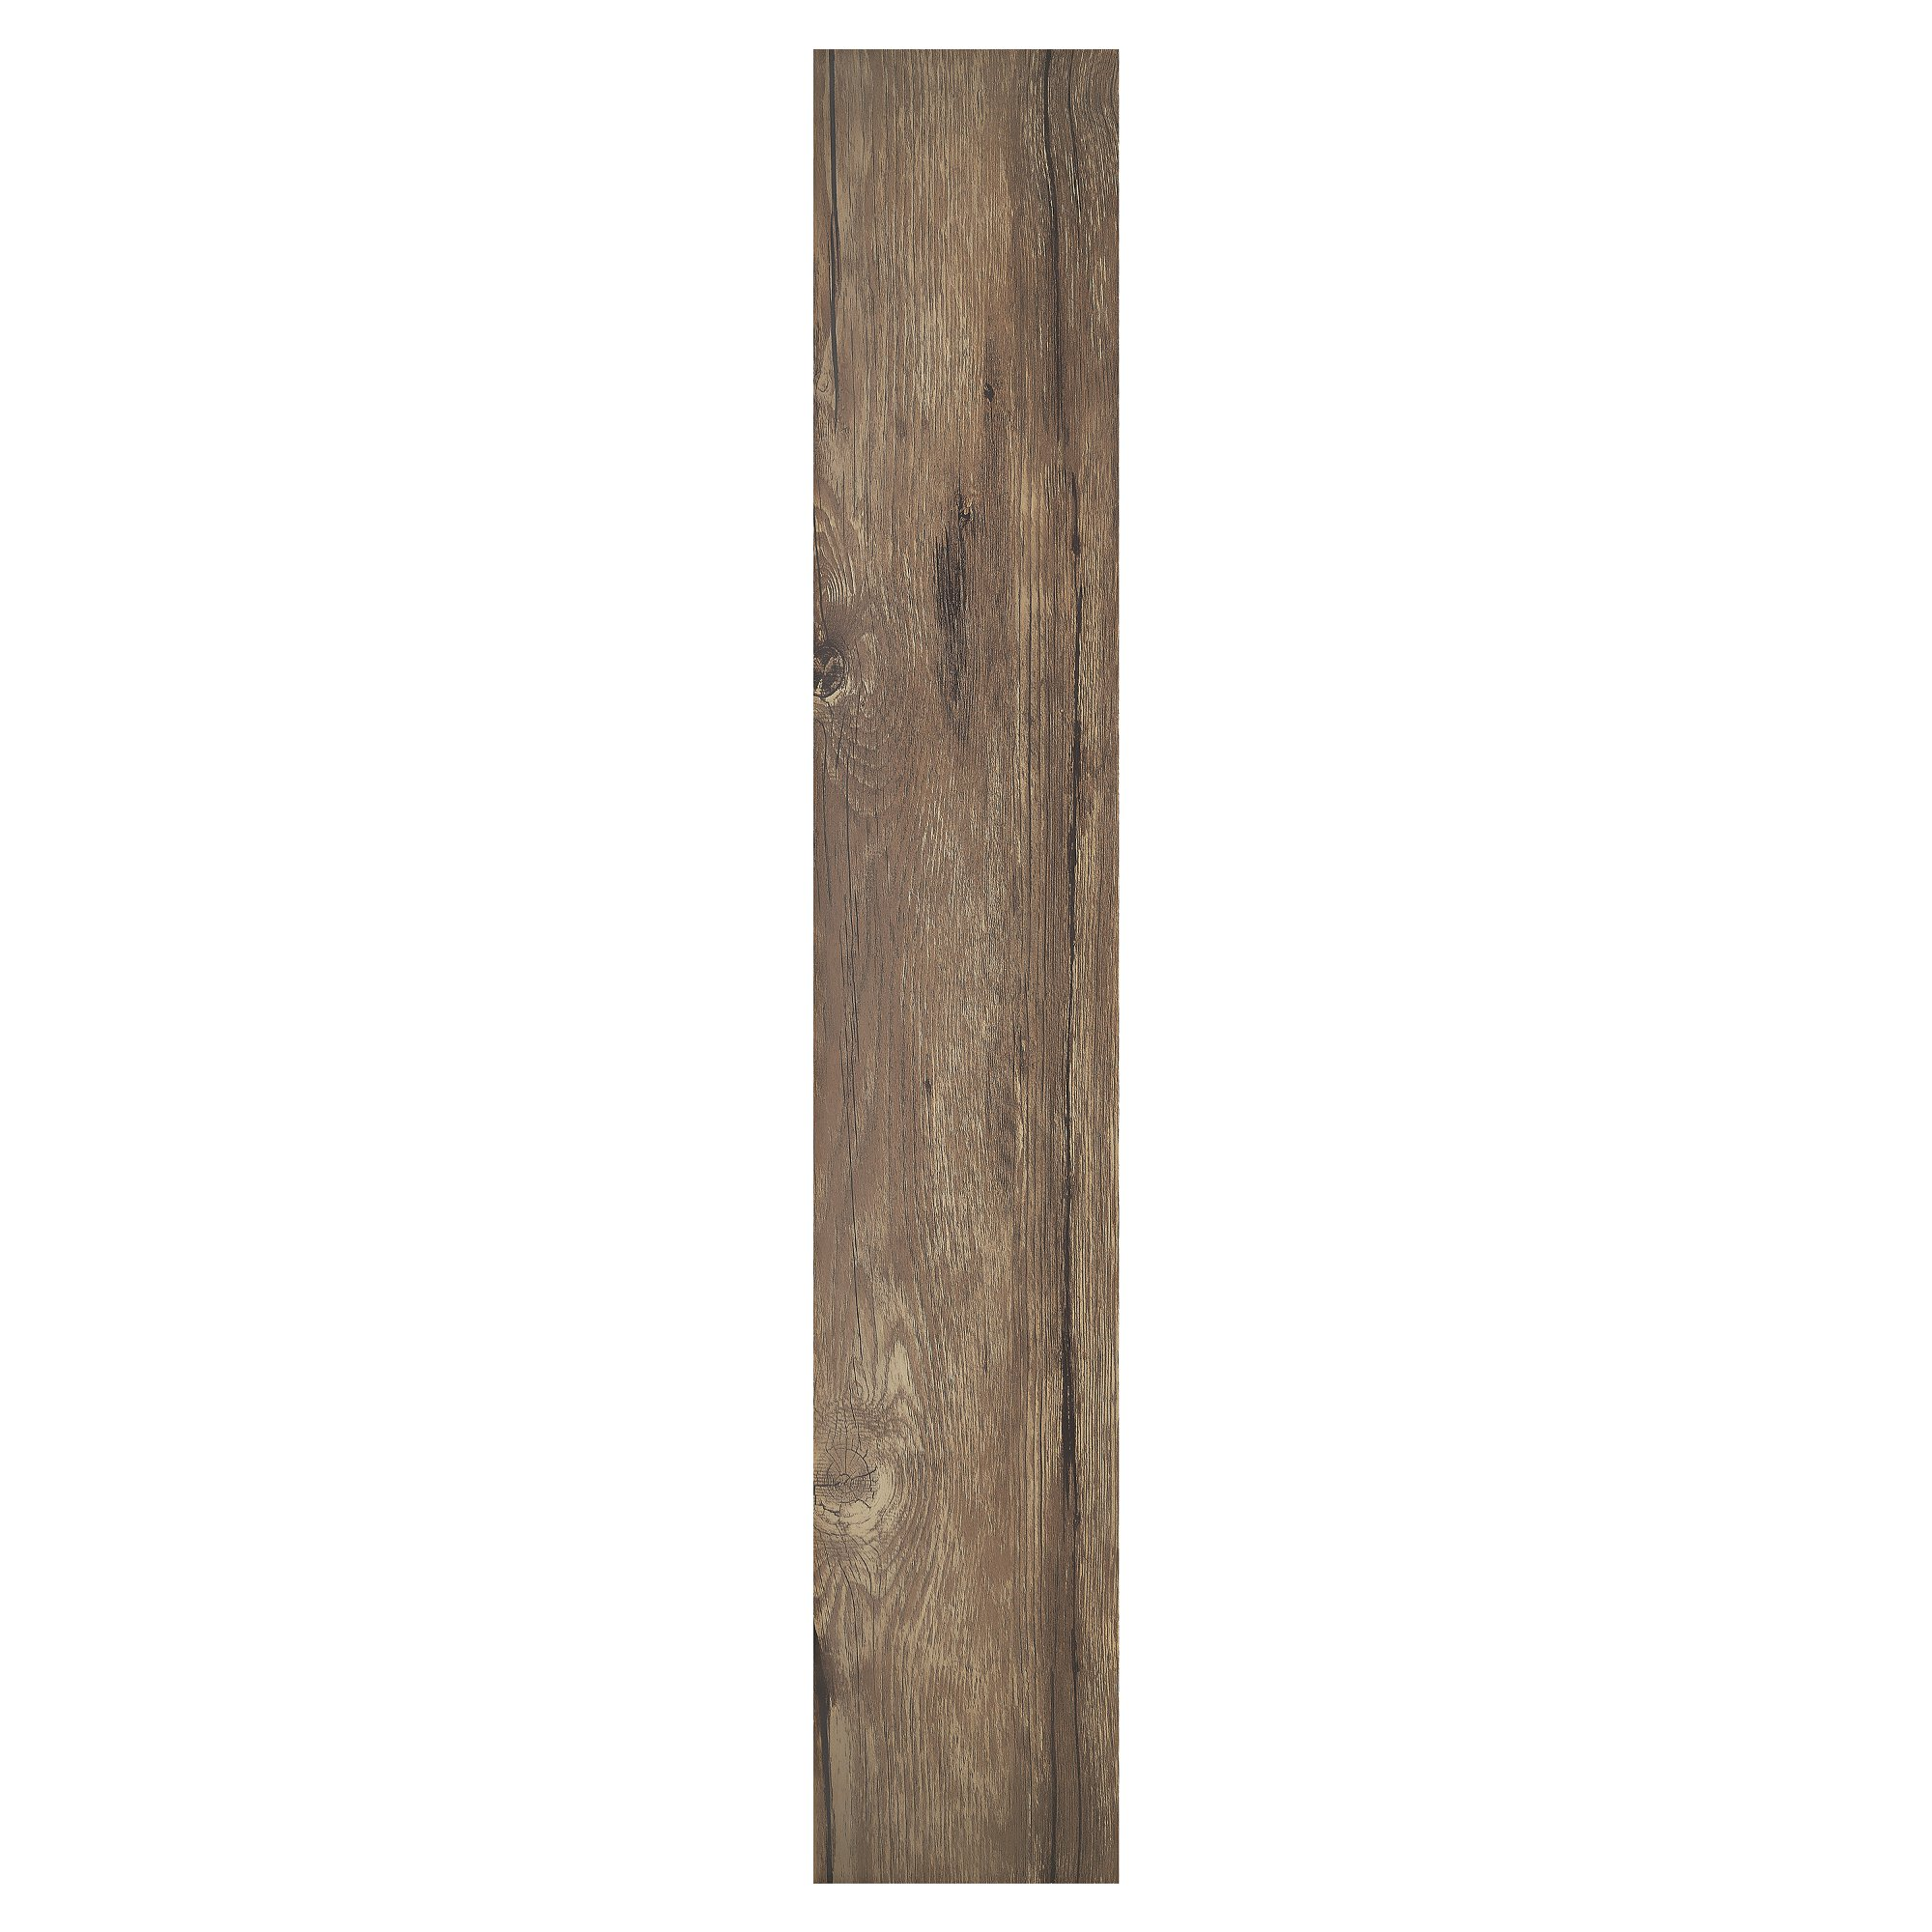 Achig #Achim Home Furnishings VFP1.2SD10 Achim Home Furnishings Nexus 1.2Mm Vinyl Floor Planks, 6 Inches x 36 Inches, Saddle,